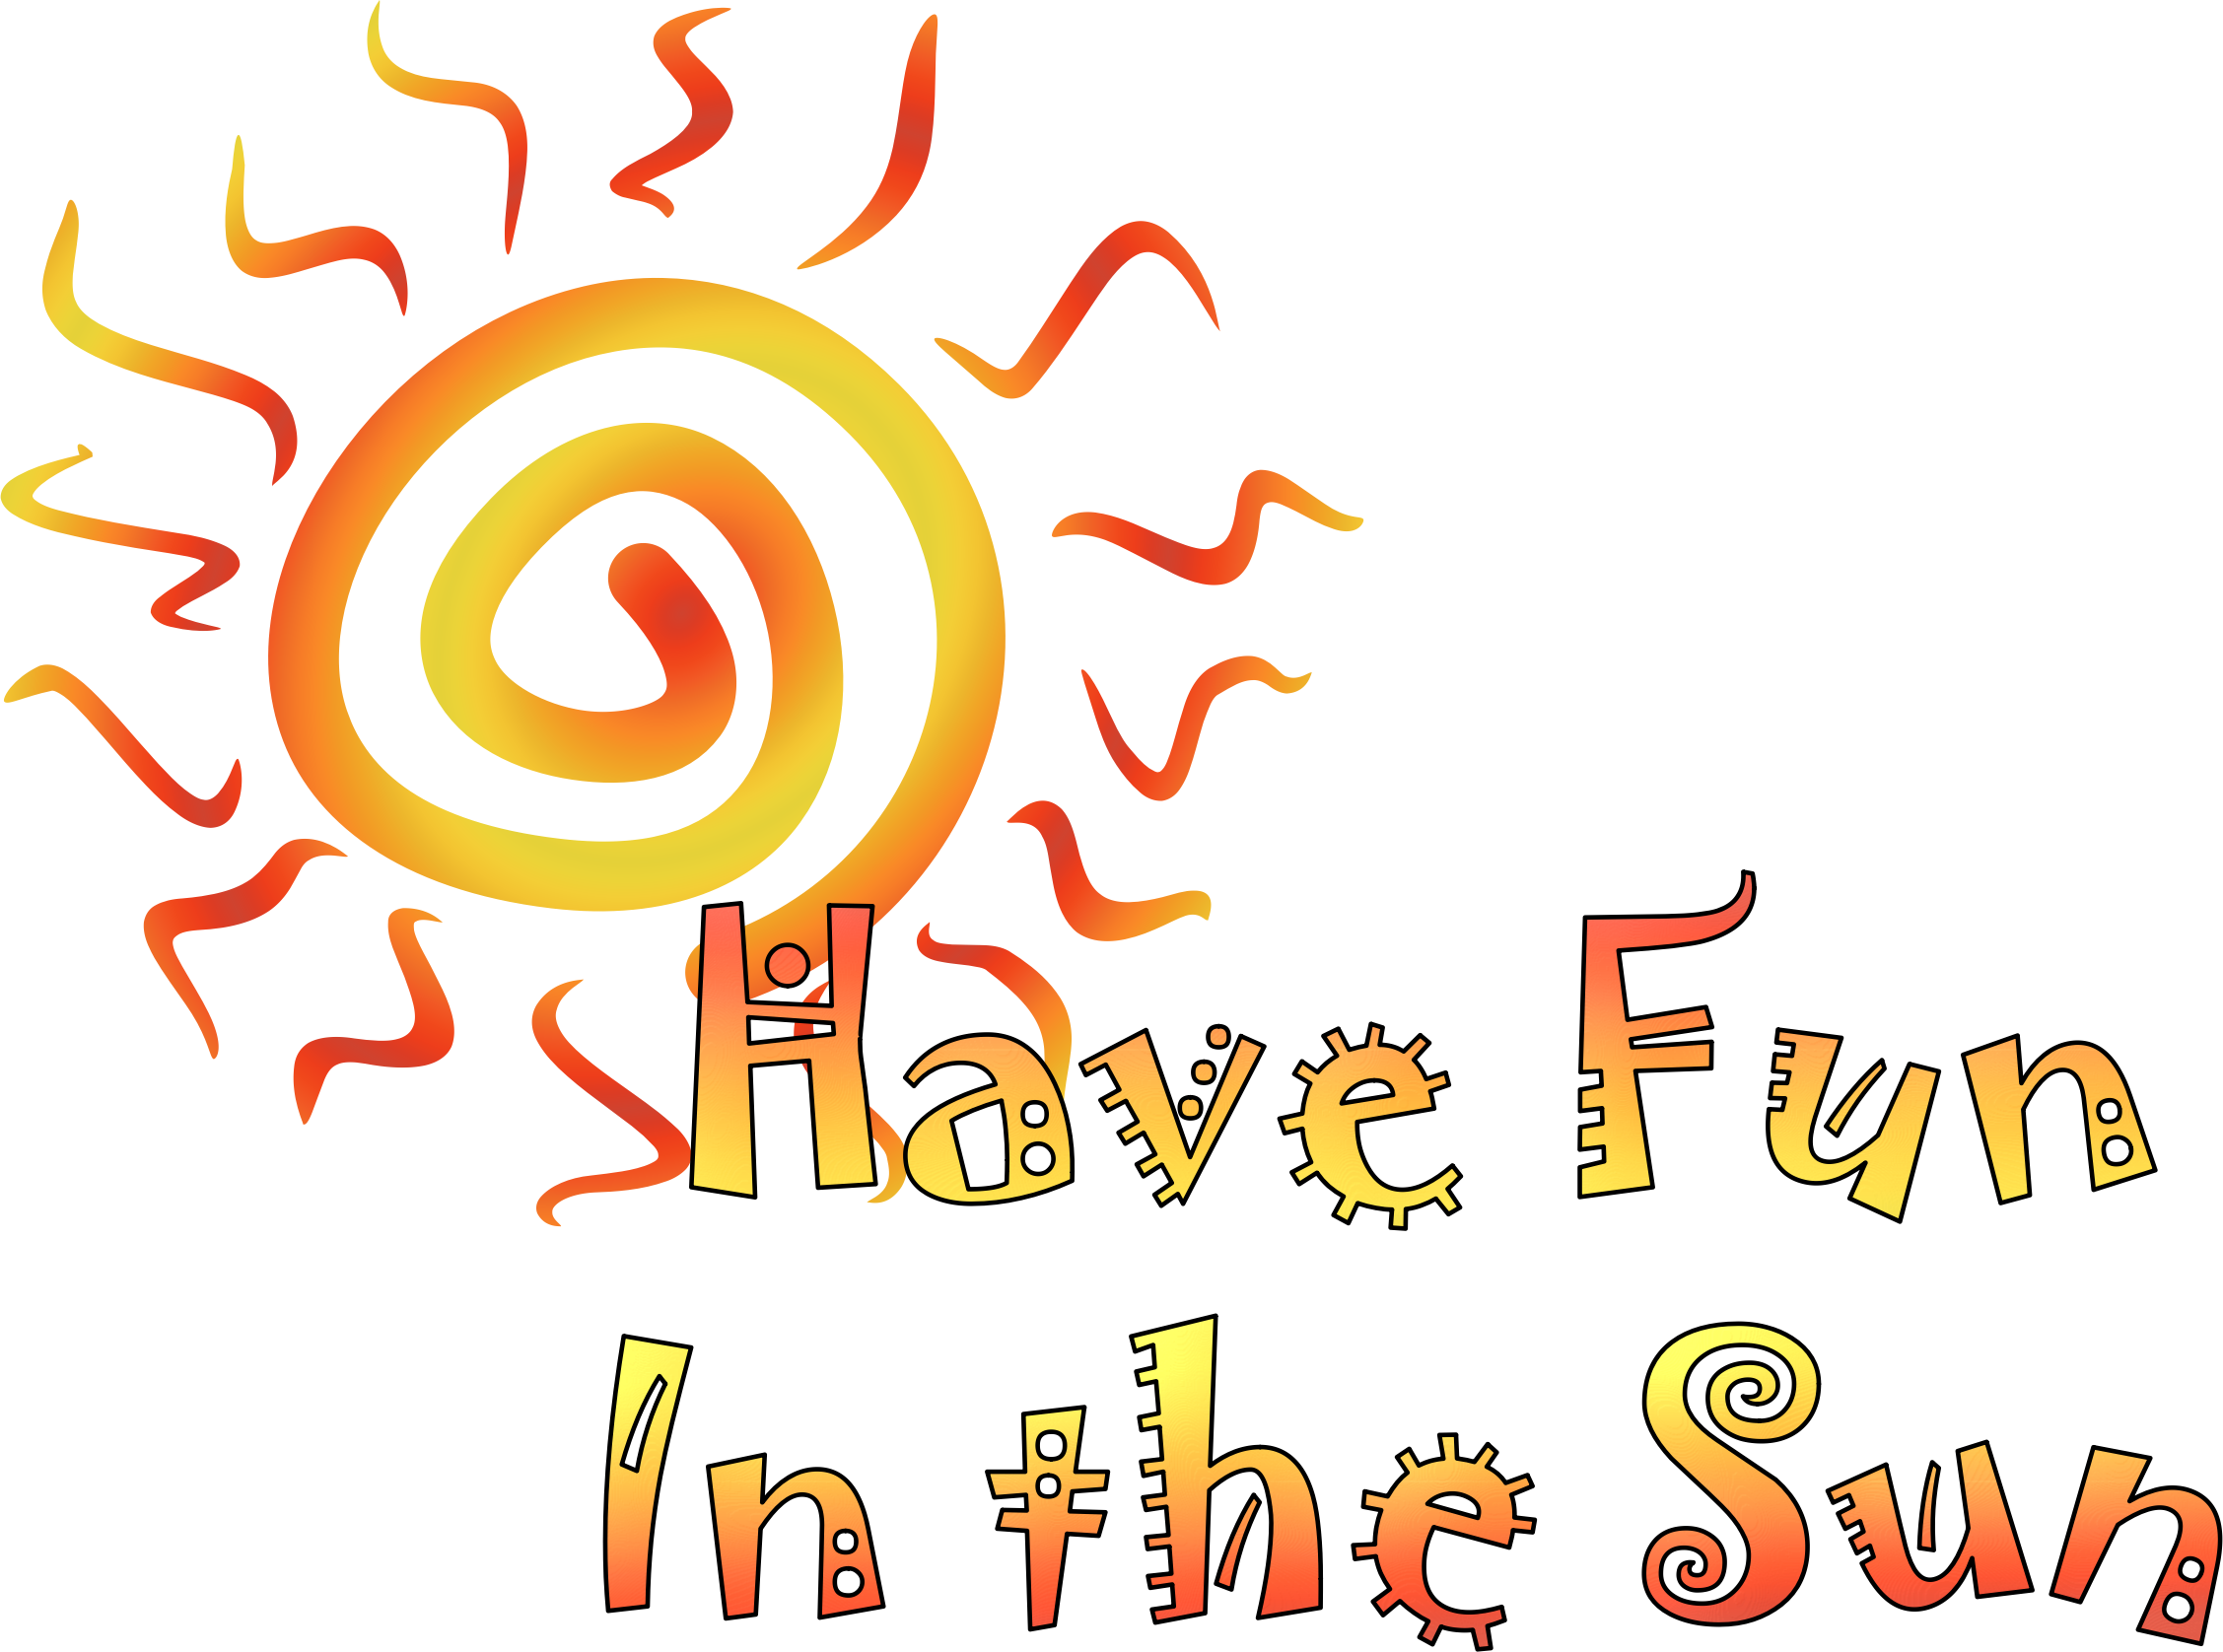 Fun in the sun people clipart clip art freeuse Clipart - Fun In the Sun clip art freeuse